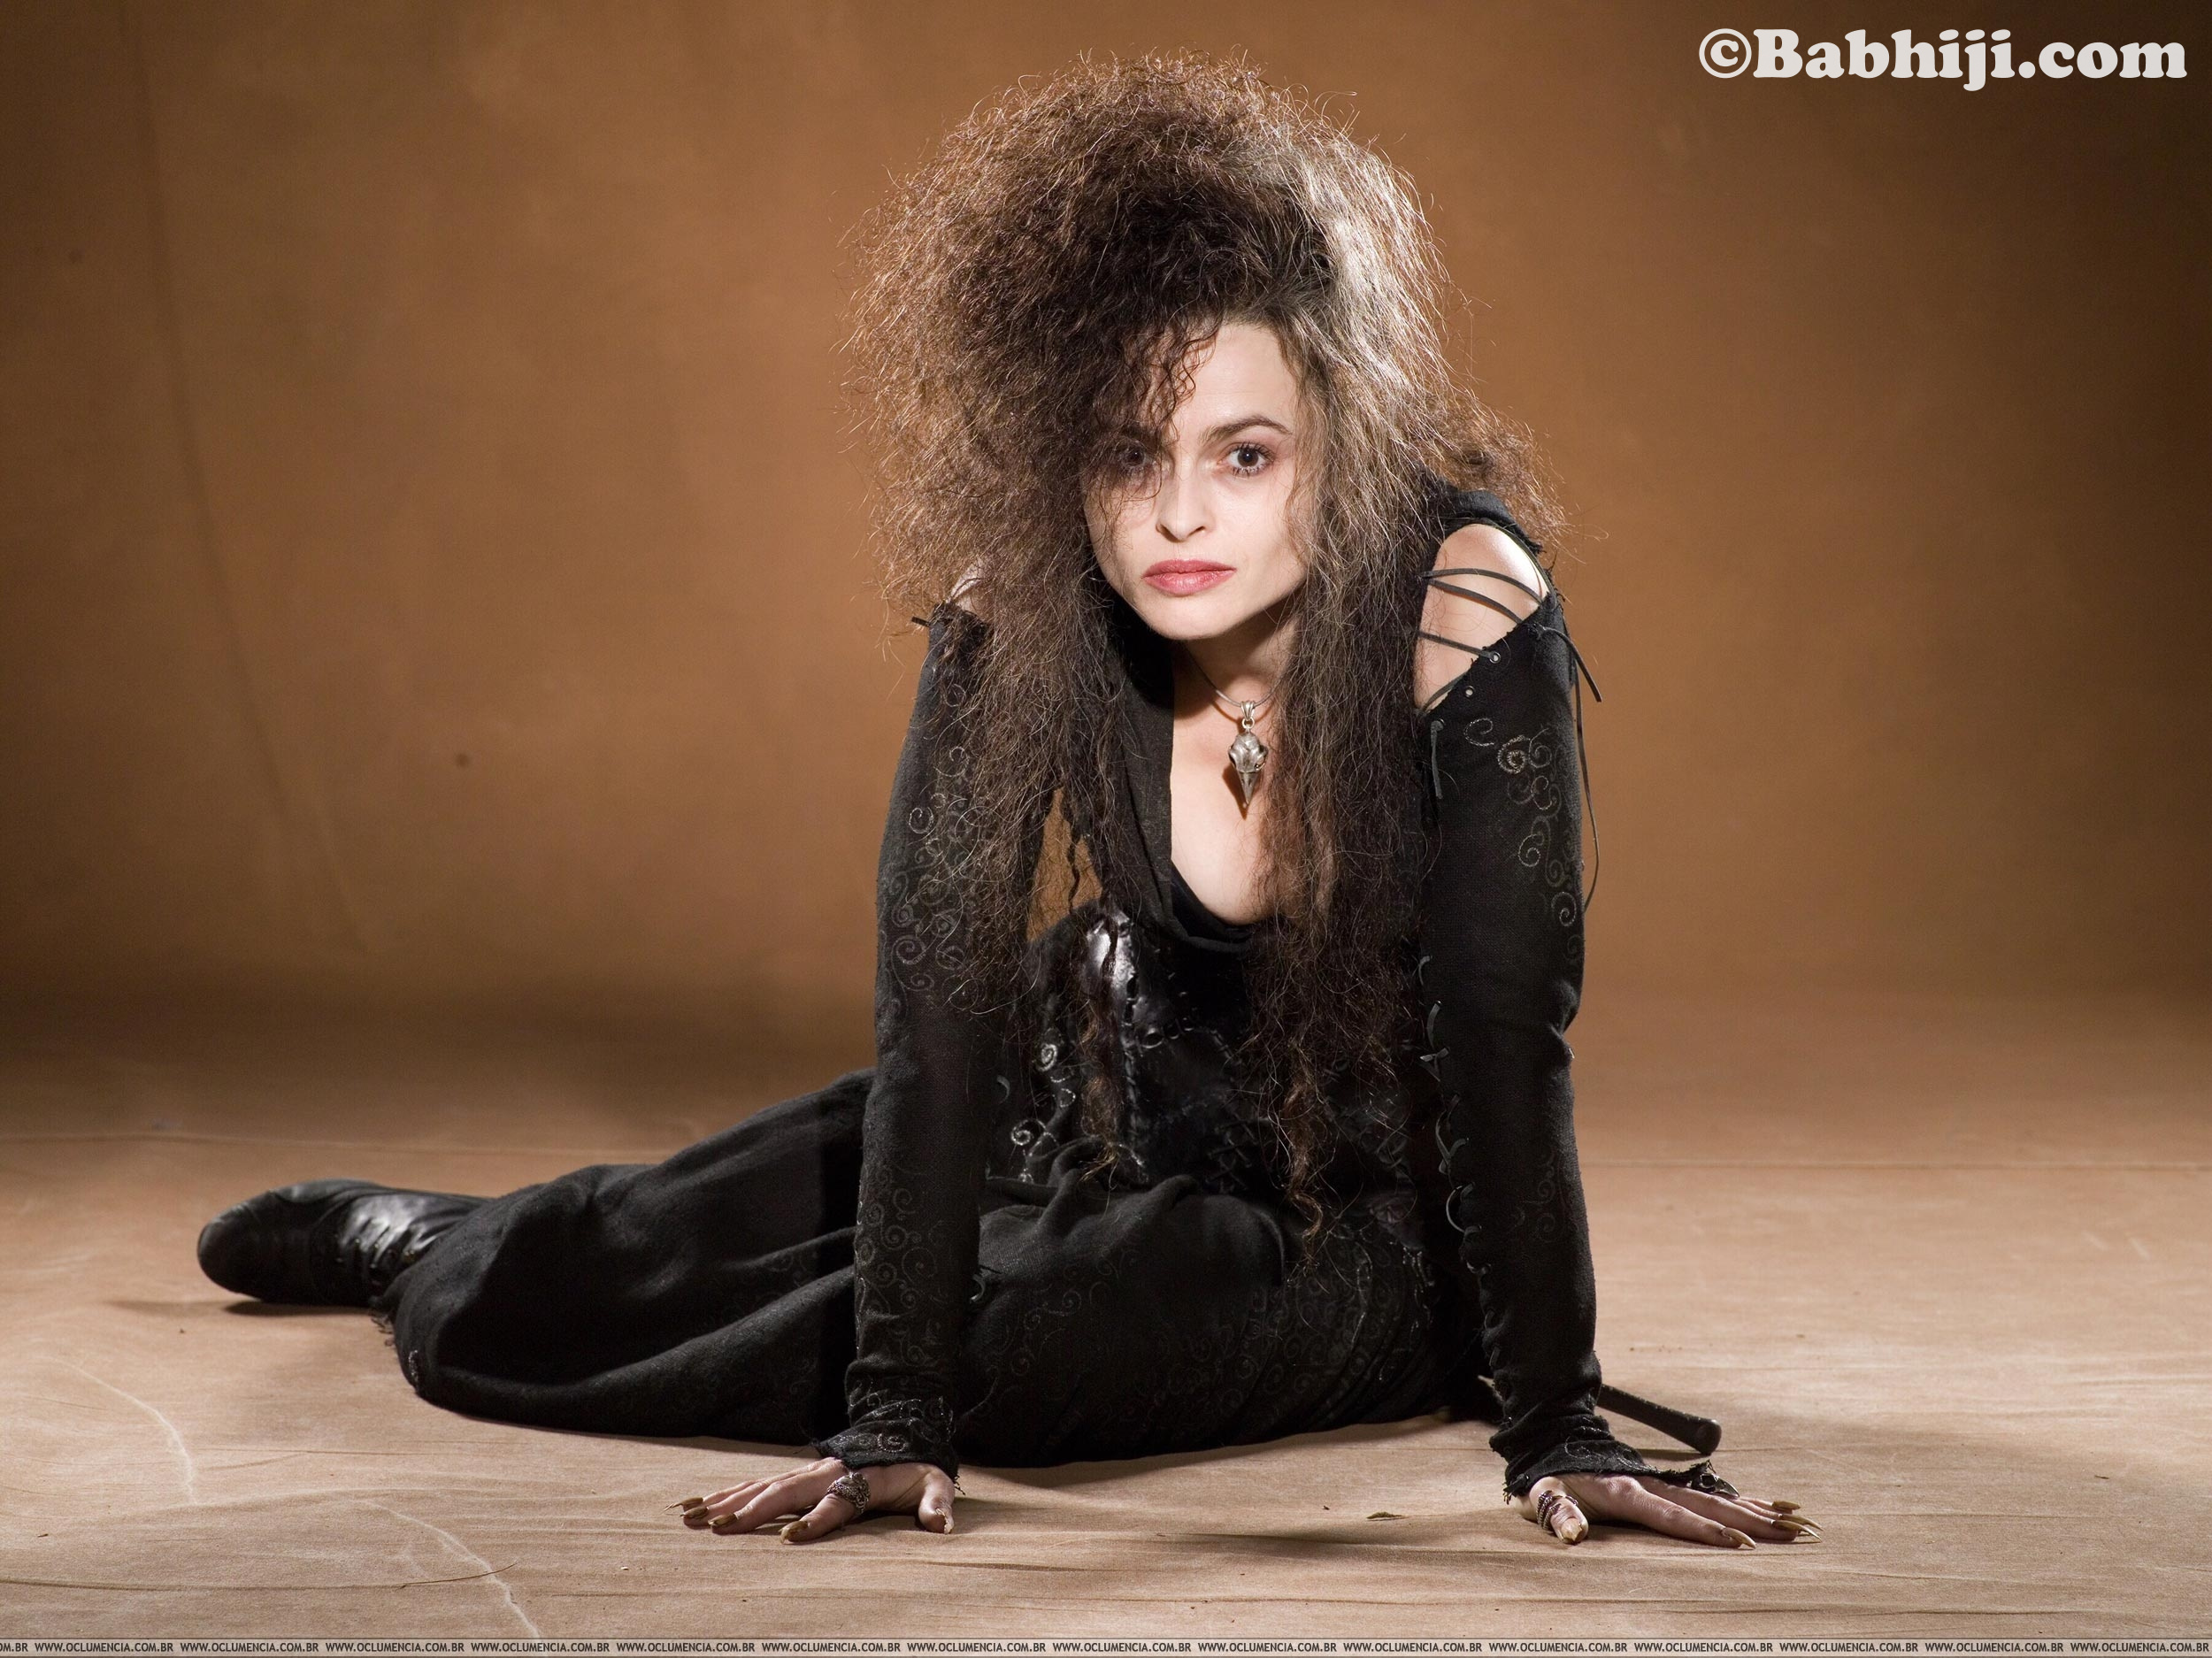 Helena Bonham Carter, Helena Bonham Carter Wallpaper, Helena Bonham Carter Photo, Helena Bonham Carter Images